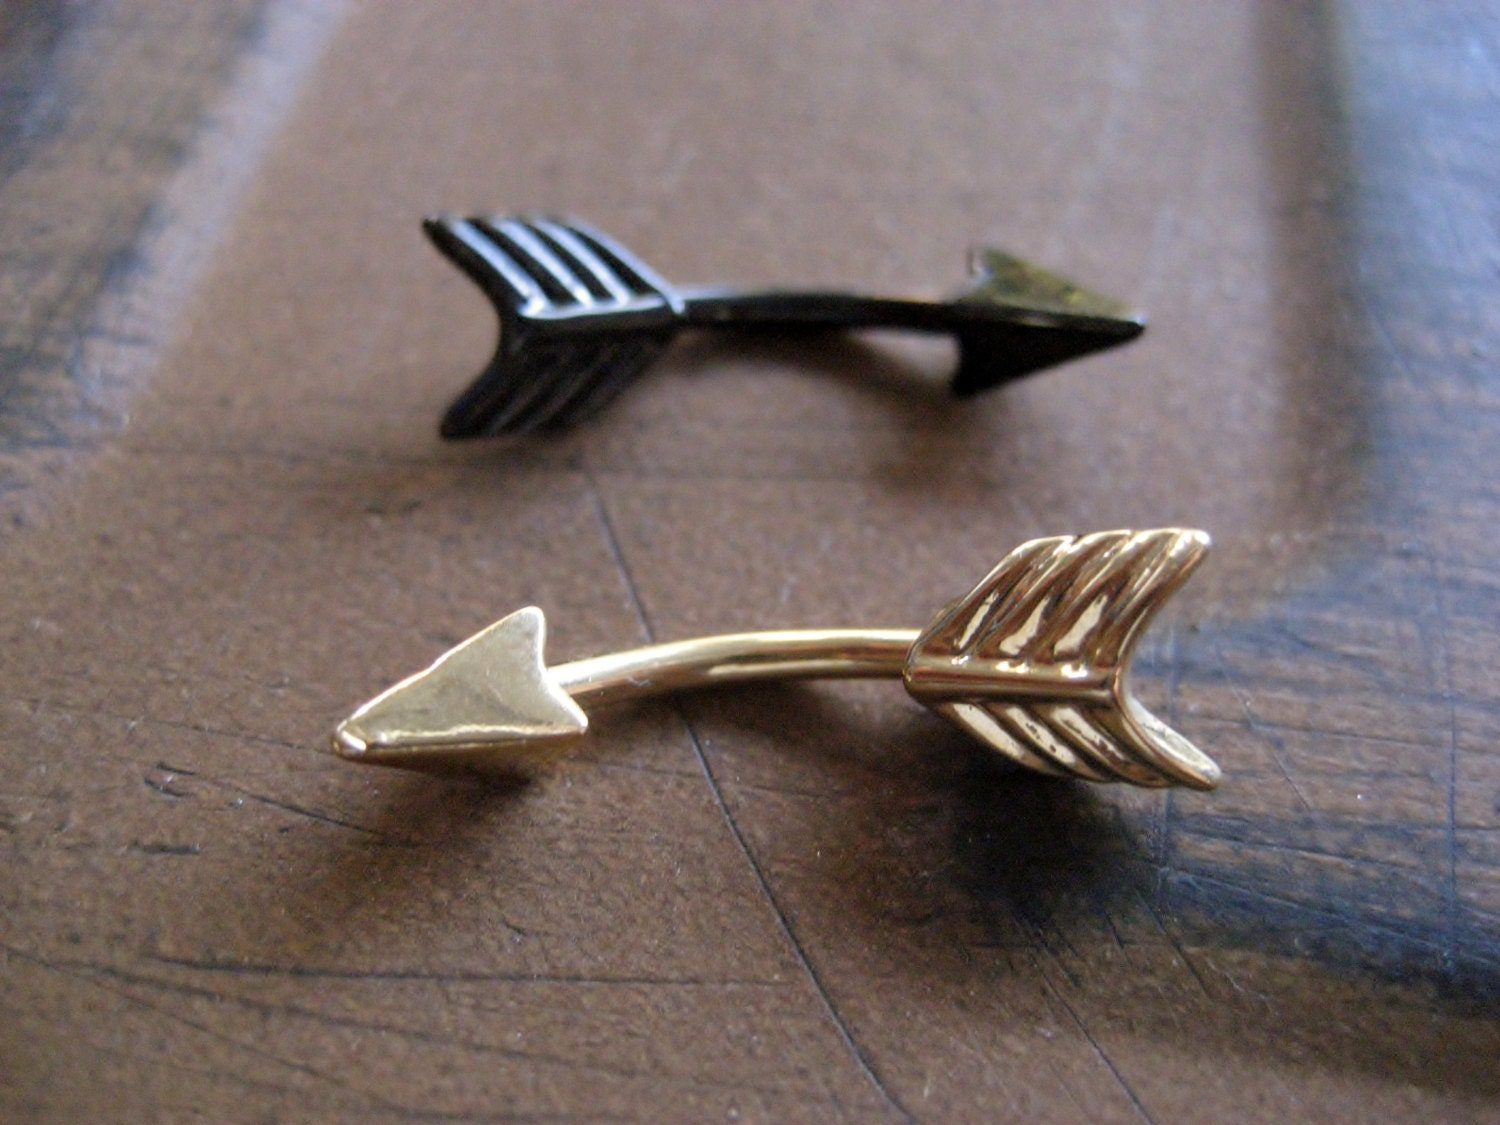 Arrow belly button jewelry ring 14 gauge eyebrow conch snug for Jewelry storm arrow ring